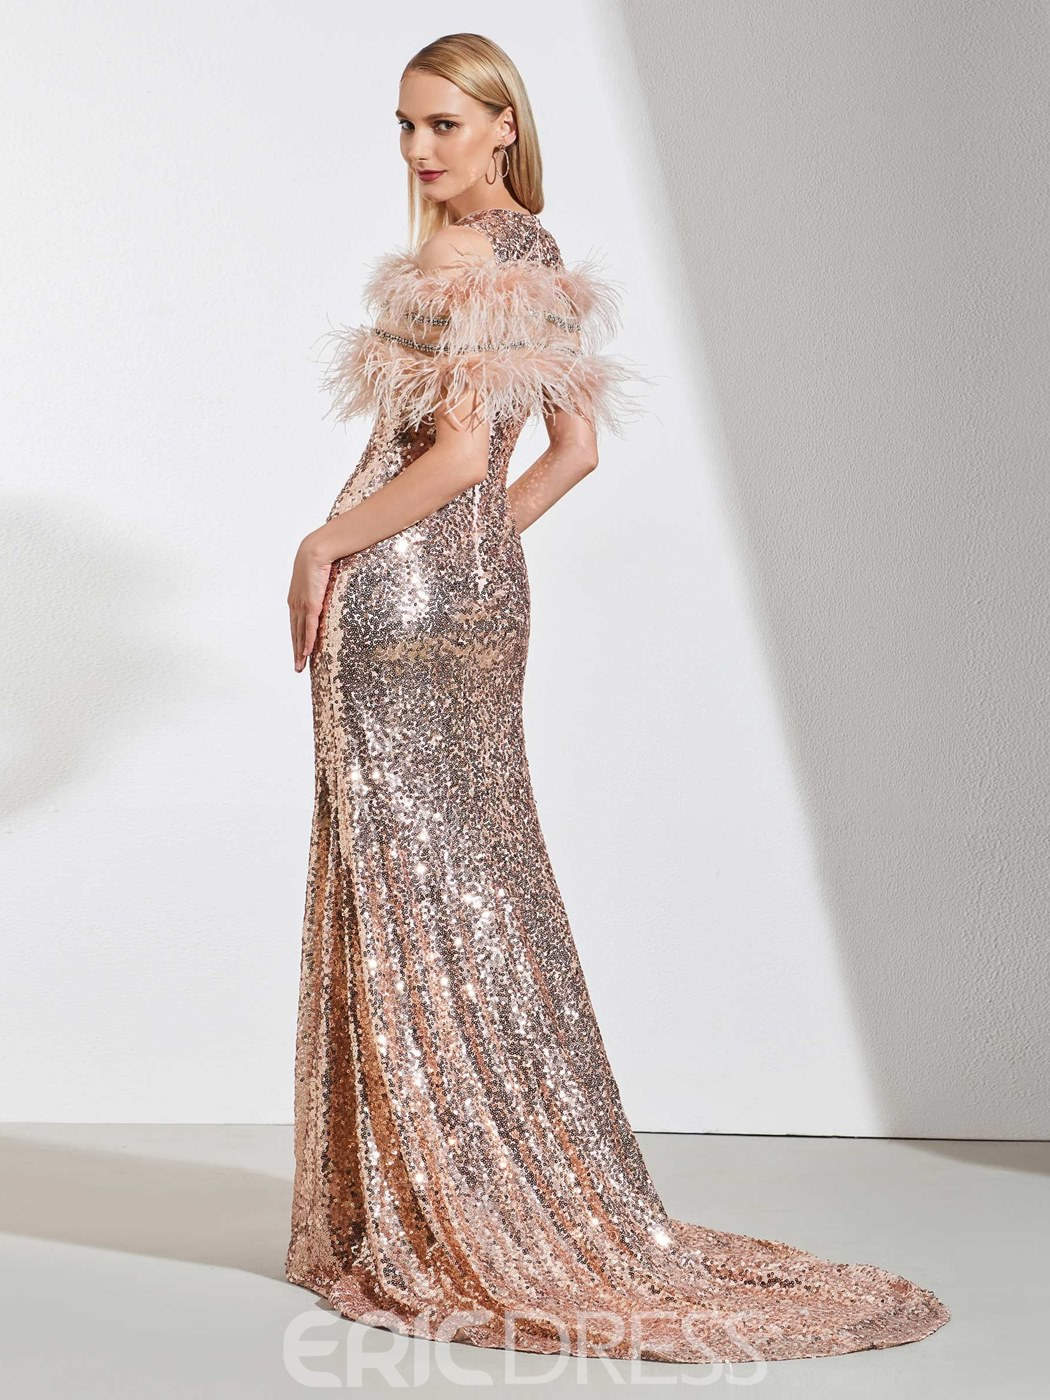 Ericdress Stunning Scoop Neck Sequin Mermaid Evening Dress